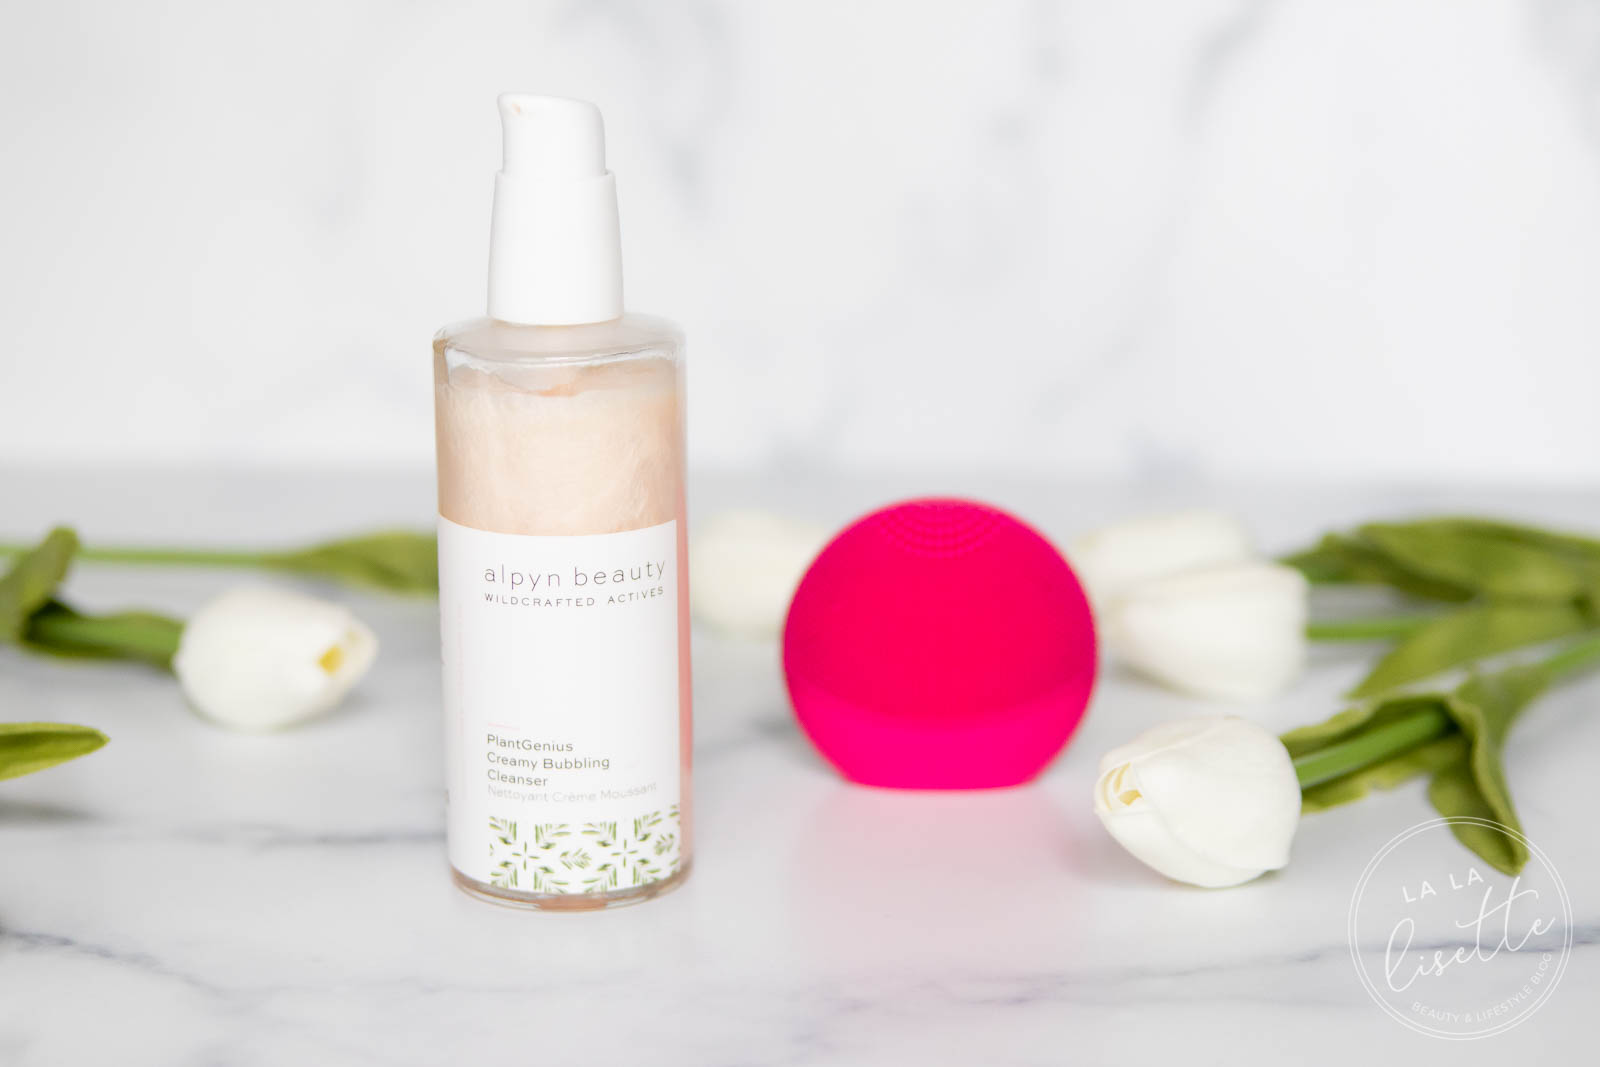 Alpyn Beauty PlantGenius Creamy Bubbling Cleanser and Foreo Luna Play